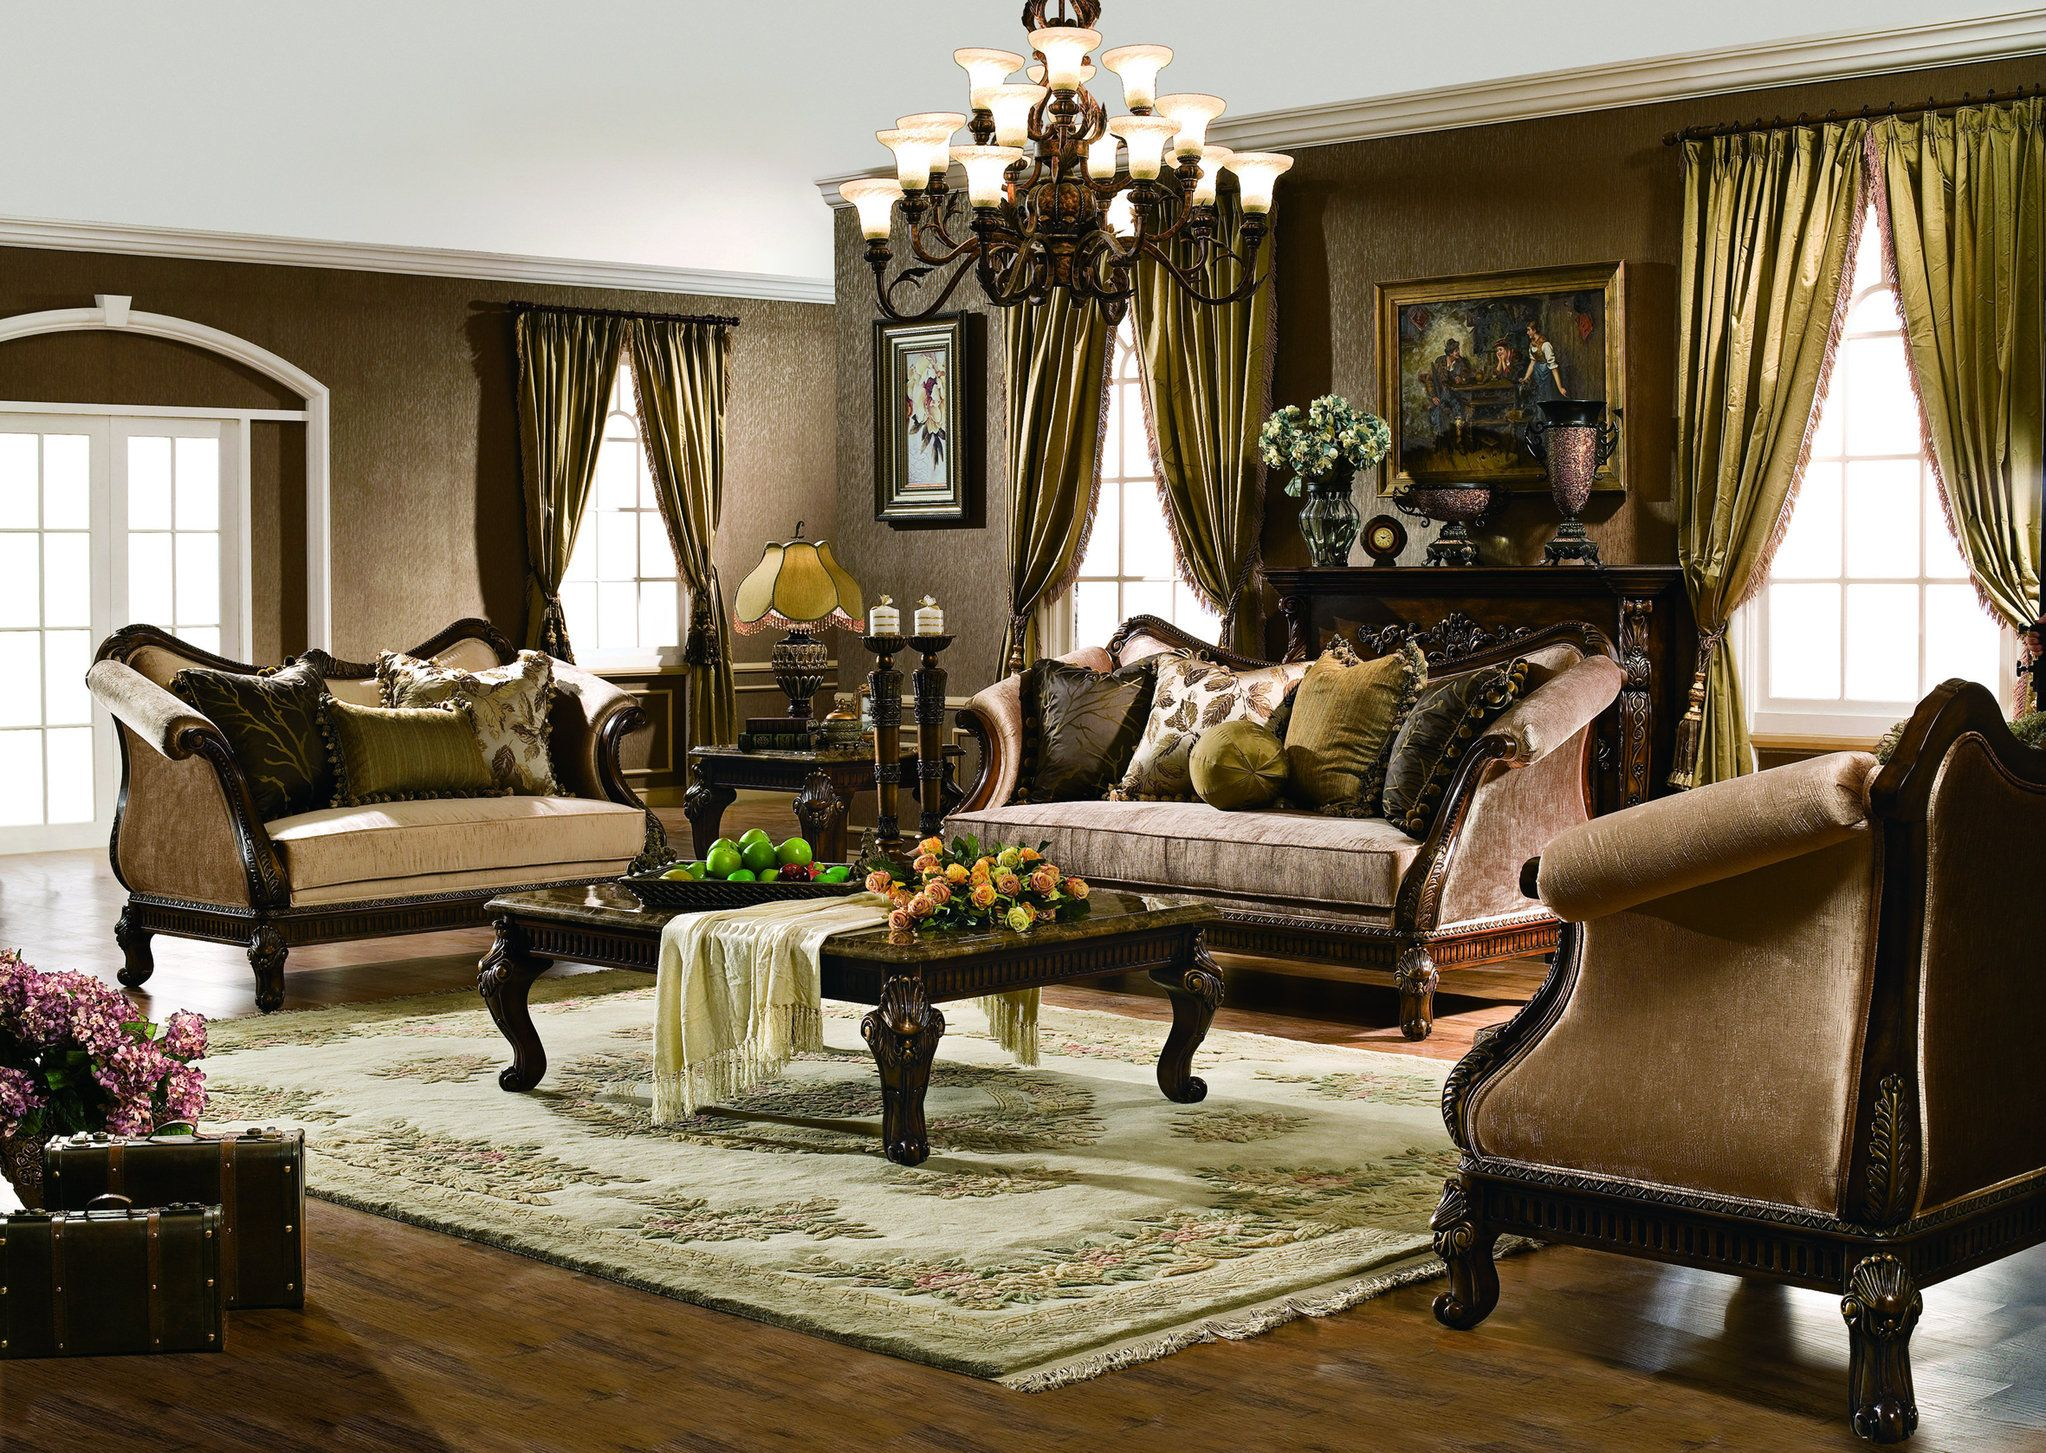 The Venice Formal Living Room Collection